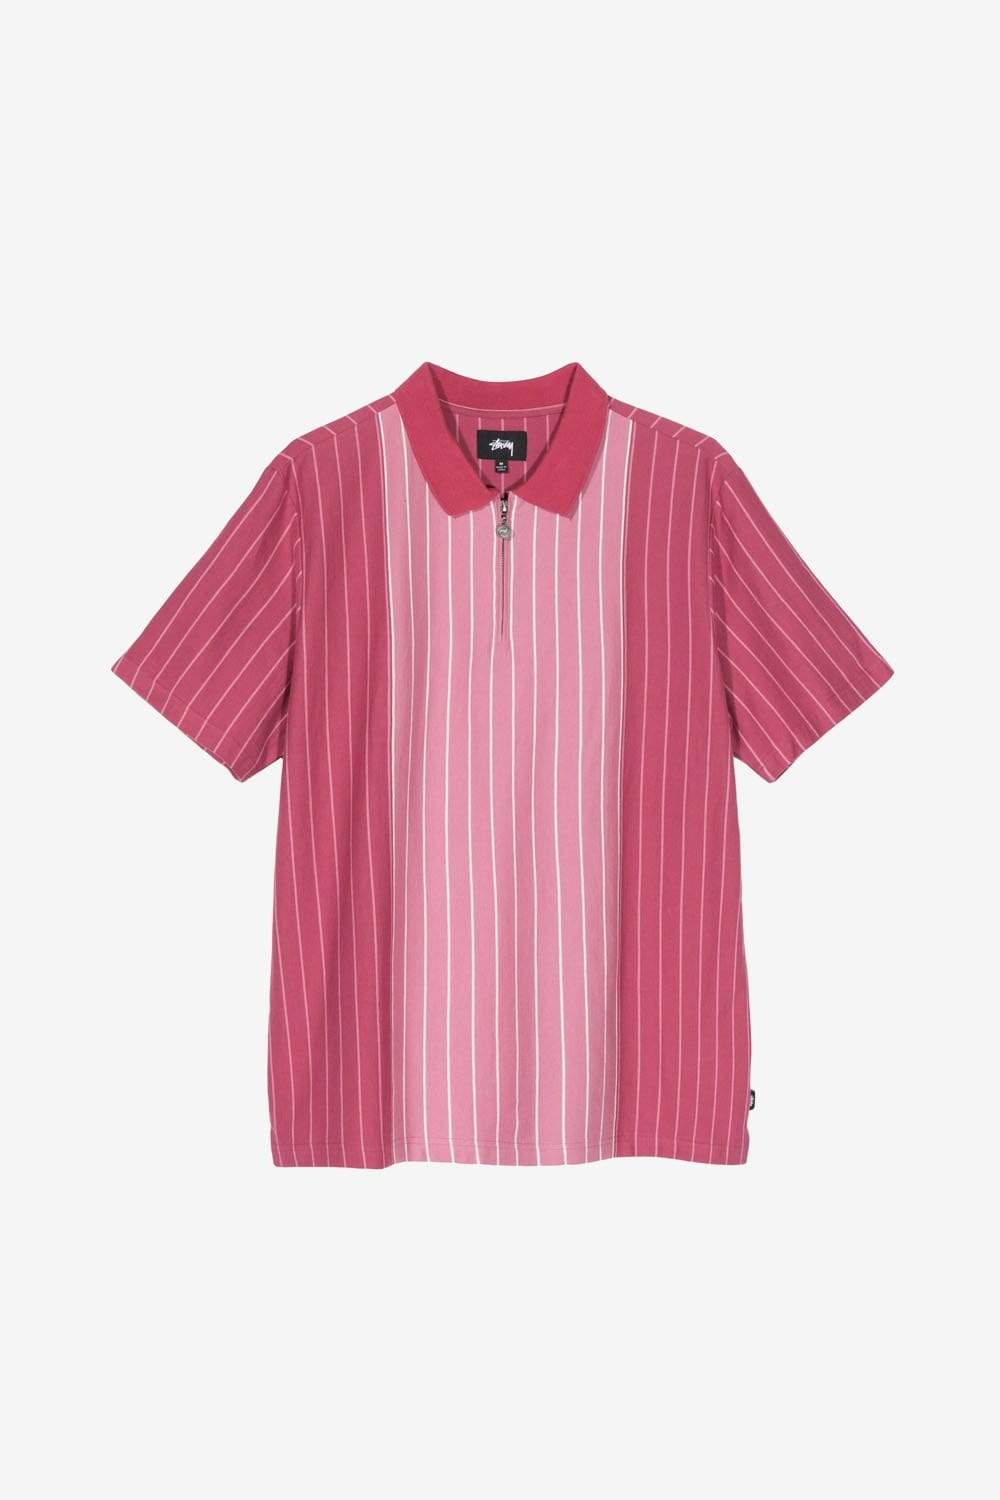 Stussy Apparel Tivoli Stripe Polo